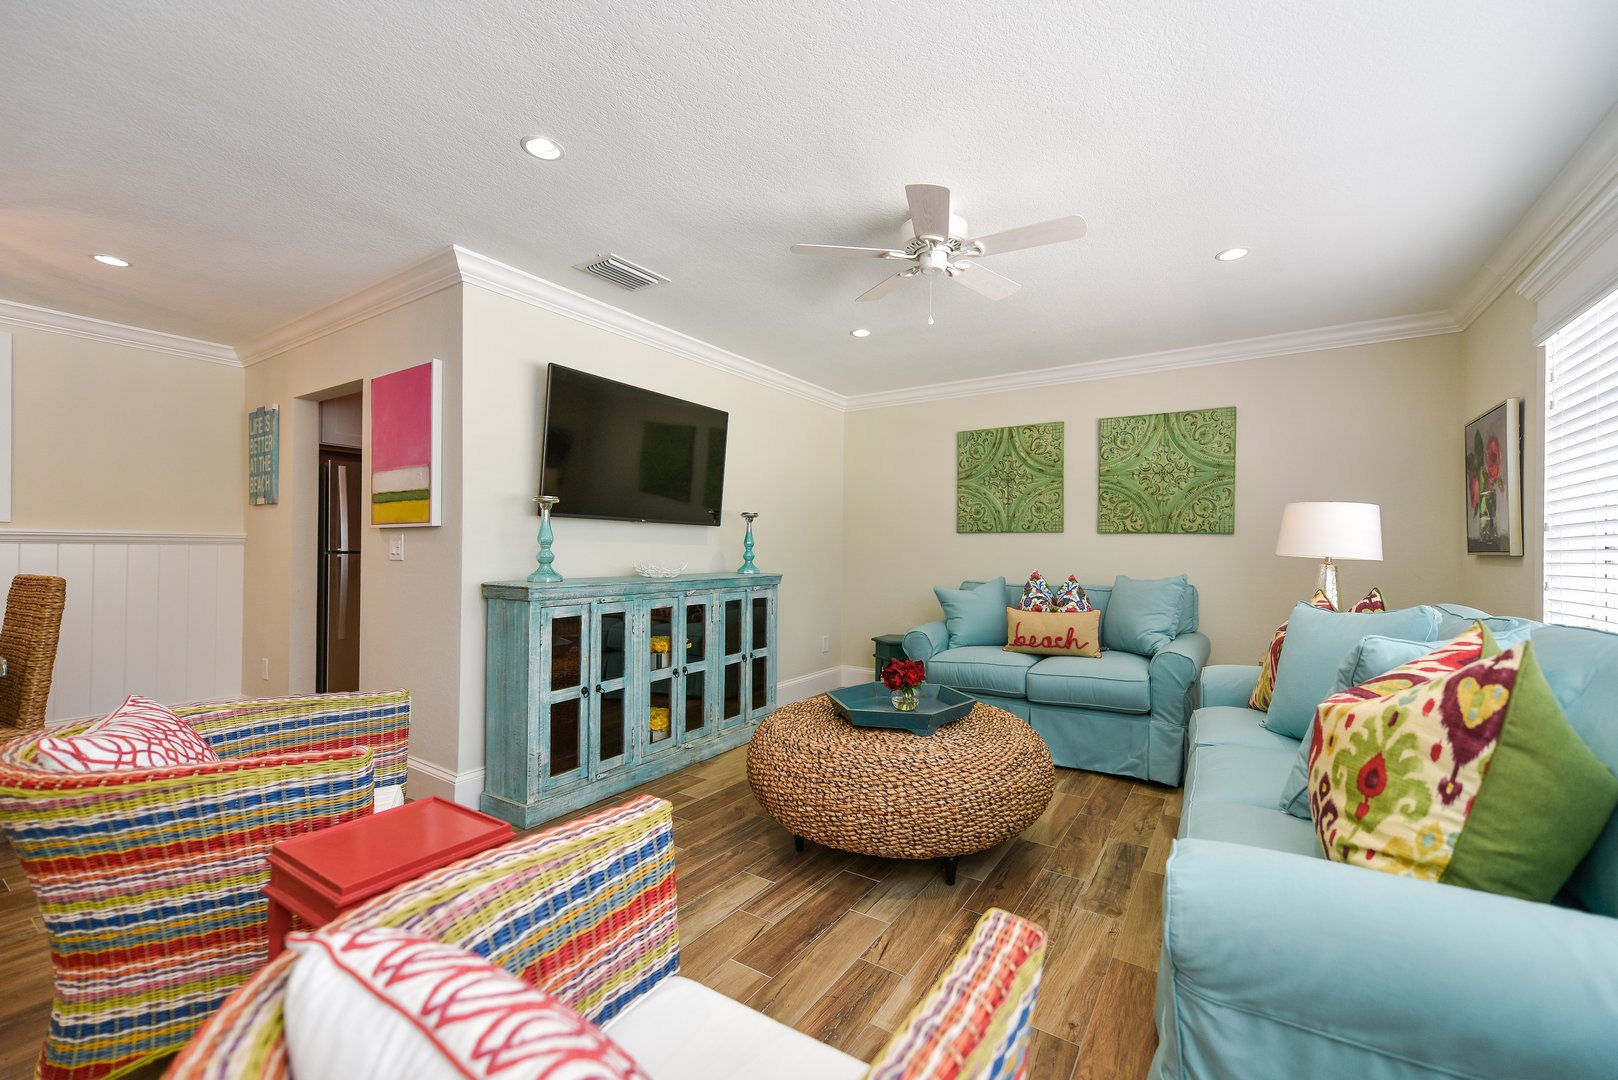 One of Our Largest 1 Bedroom Suites - Handicap Friendly